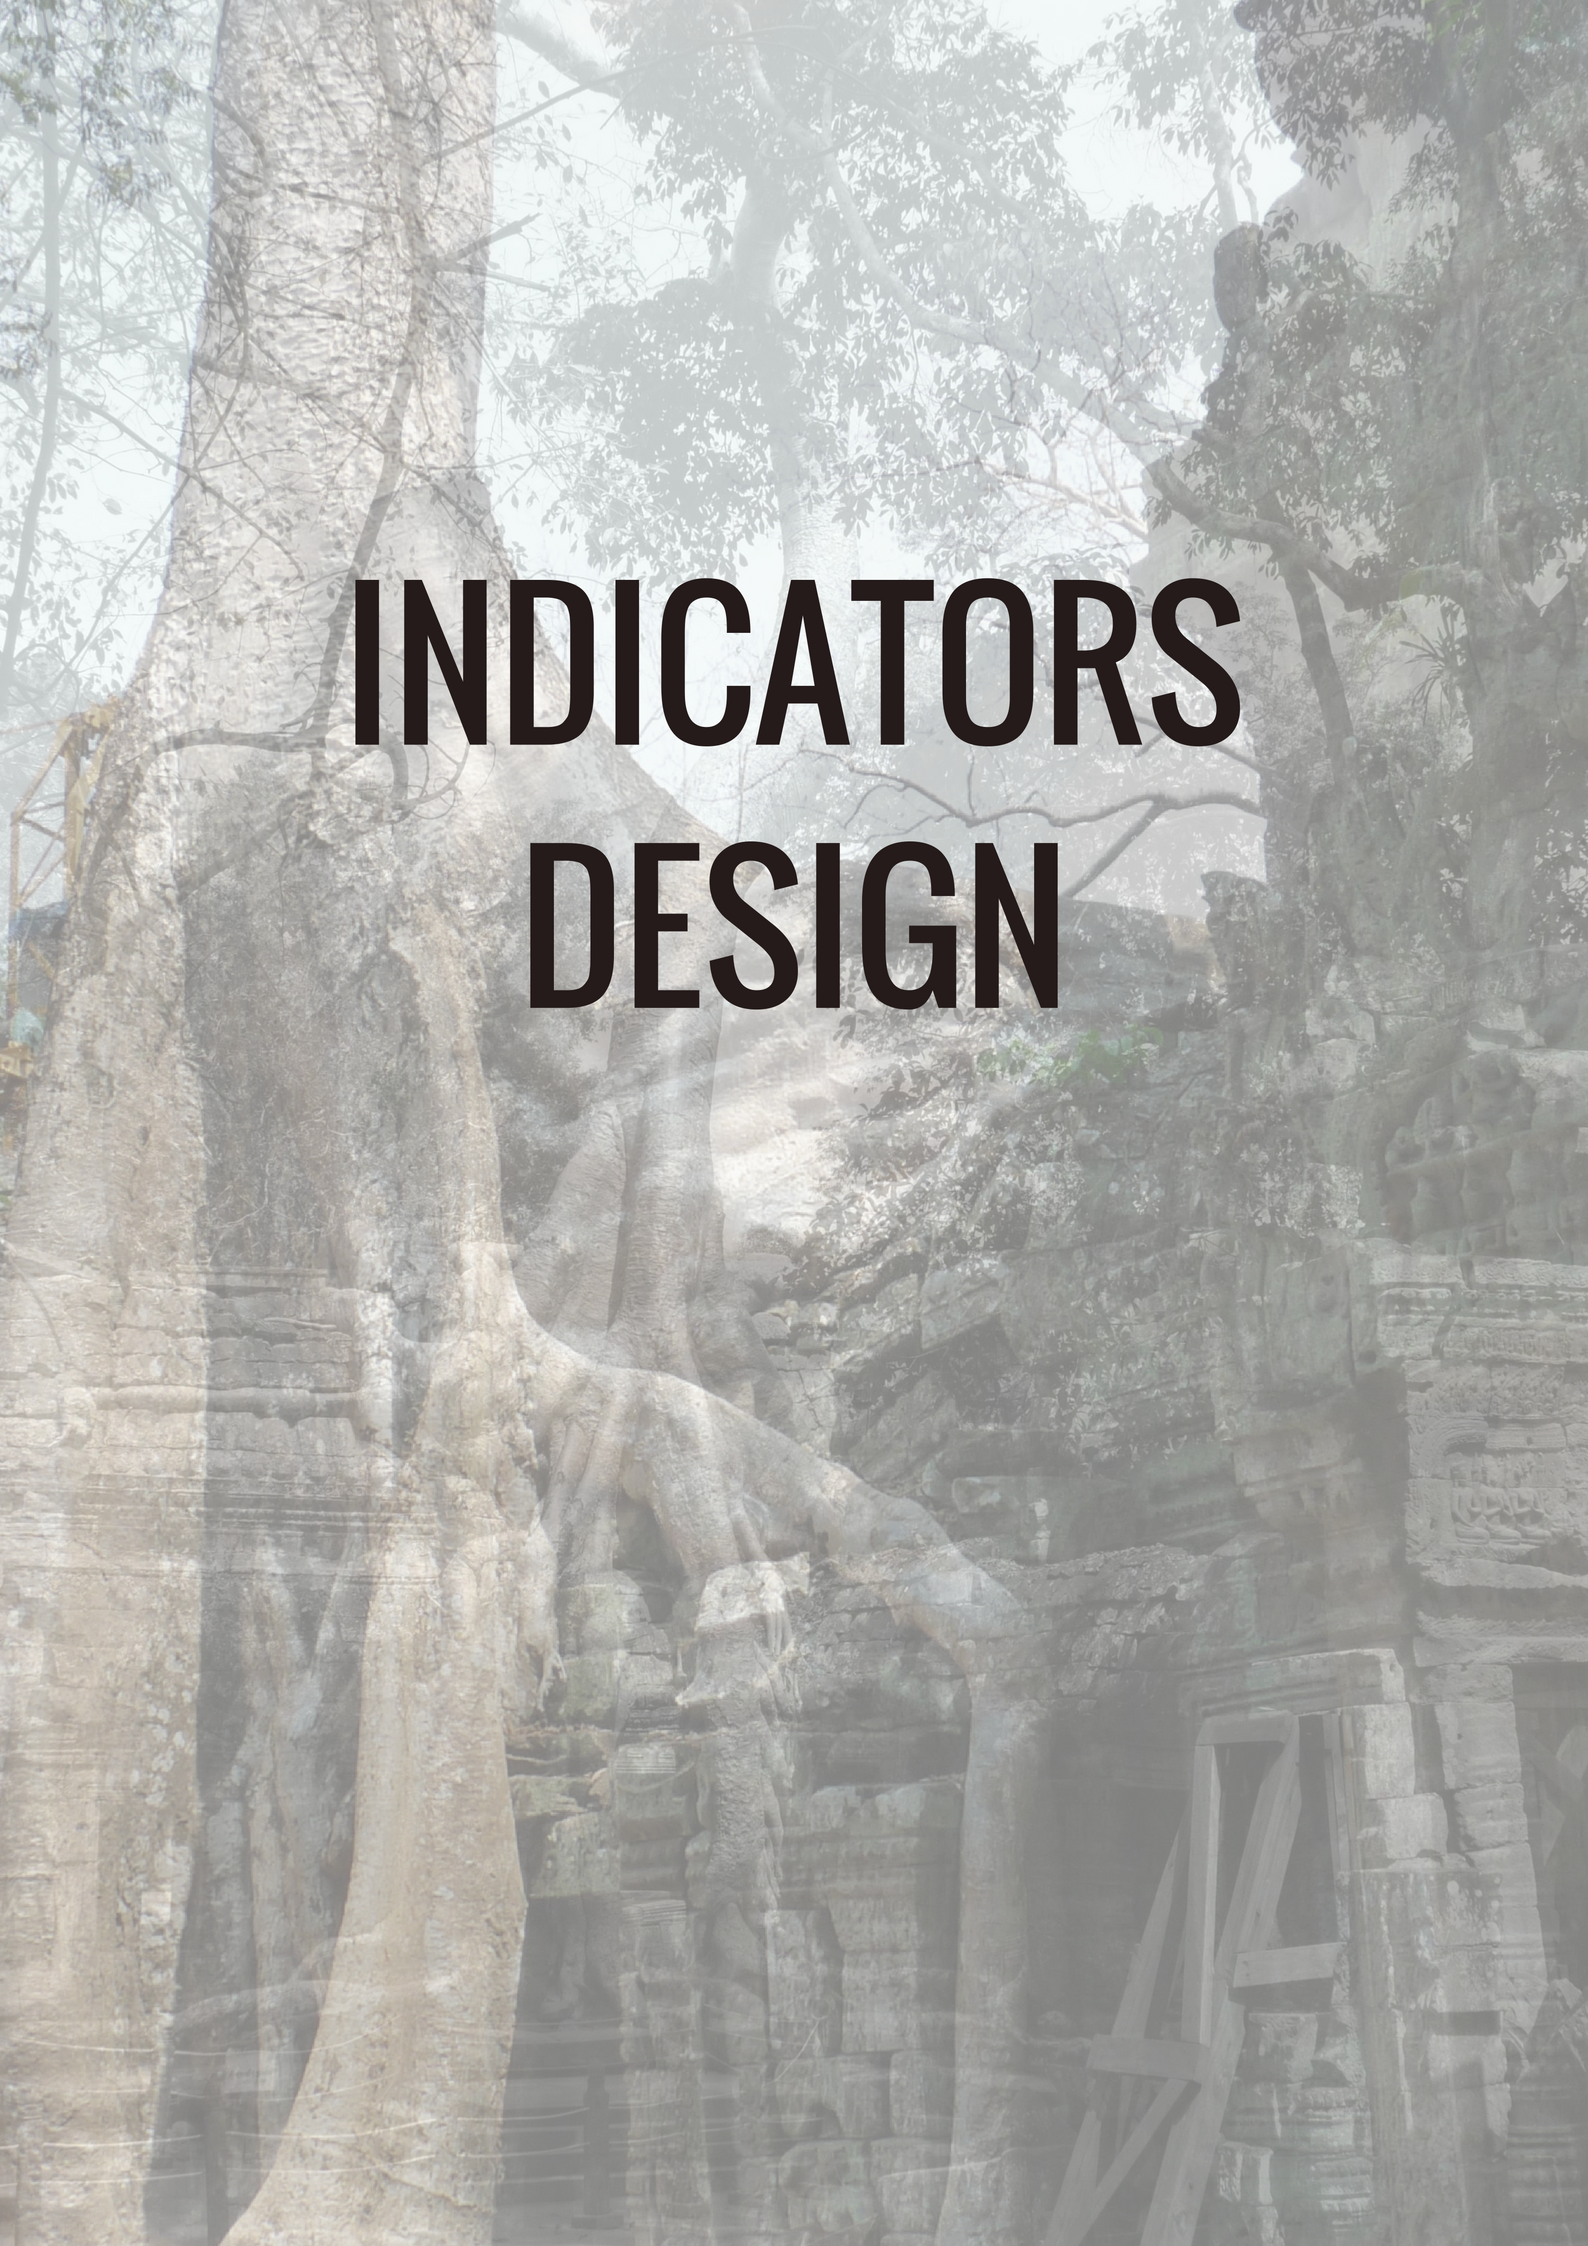 Indicators design